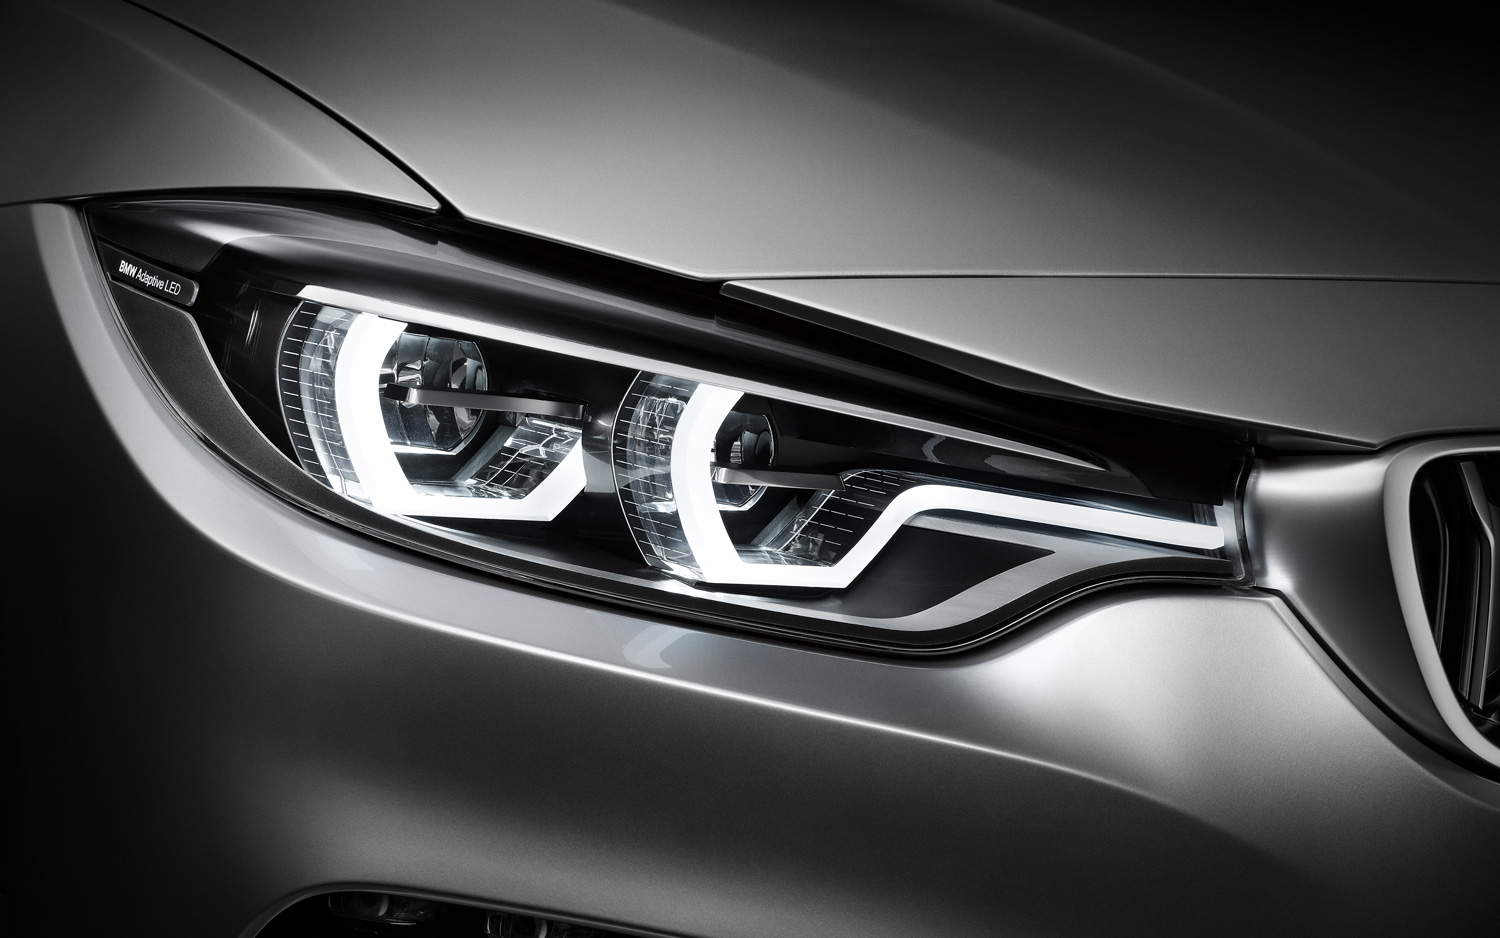 bmwusa response test safety showthread and bmw headlights iihs forums series in marginal score s